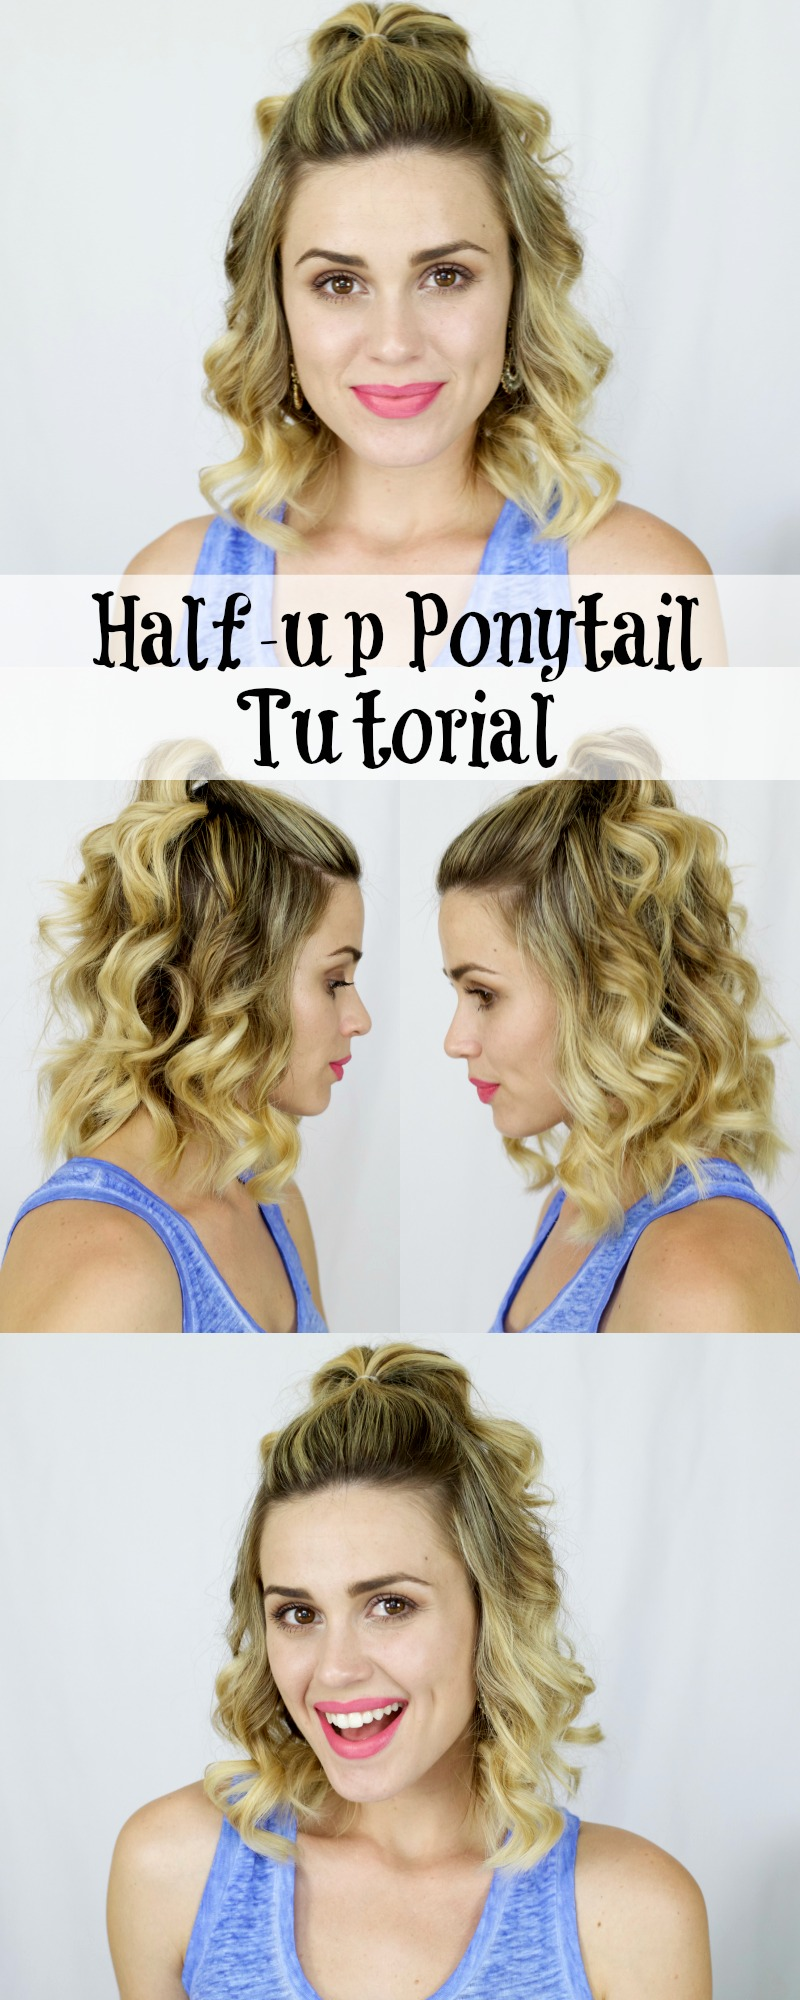 Houston beauty blogger Uptown With Elly Brown shares How to curl your hair with the NuMe classic wand pearl + a half-up ponytail tutorial for short hair!